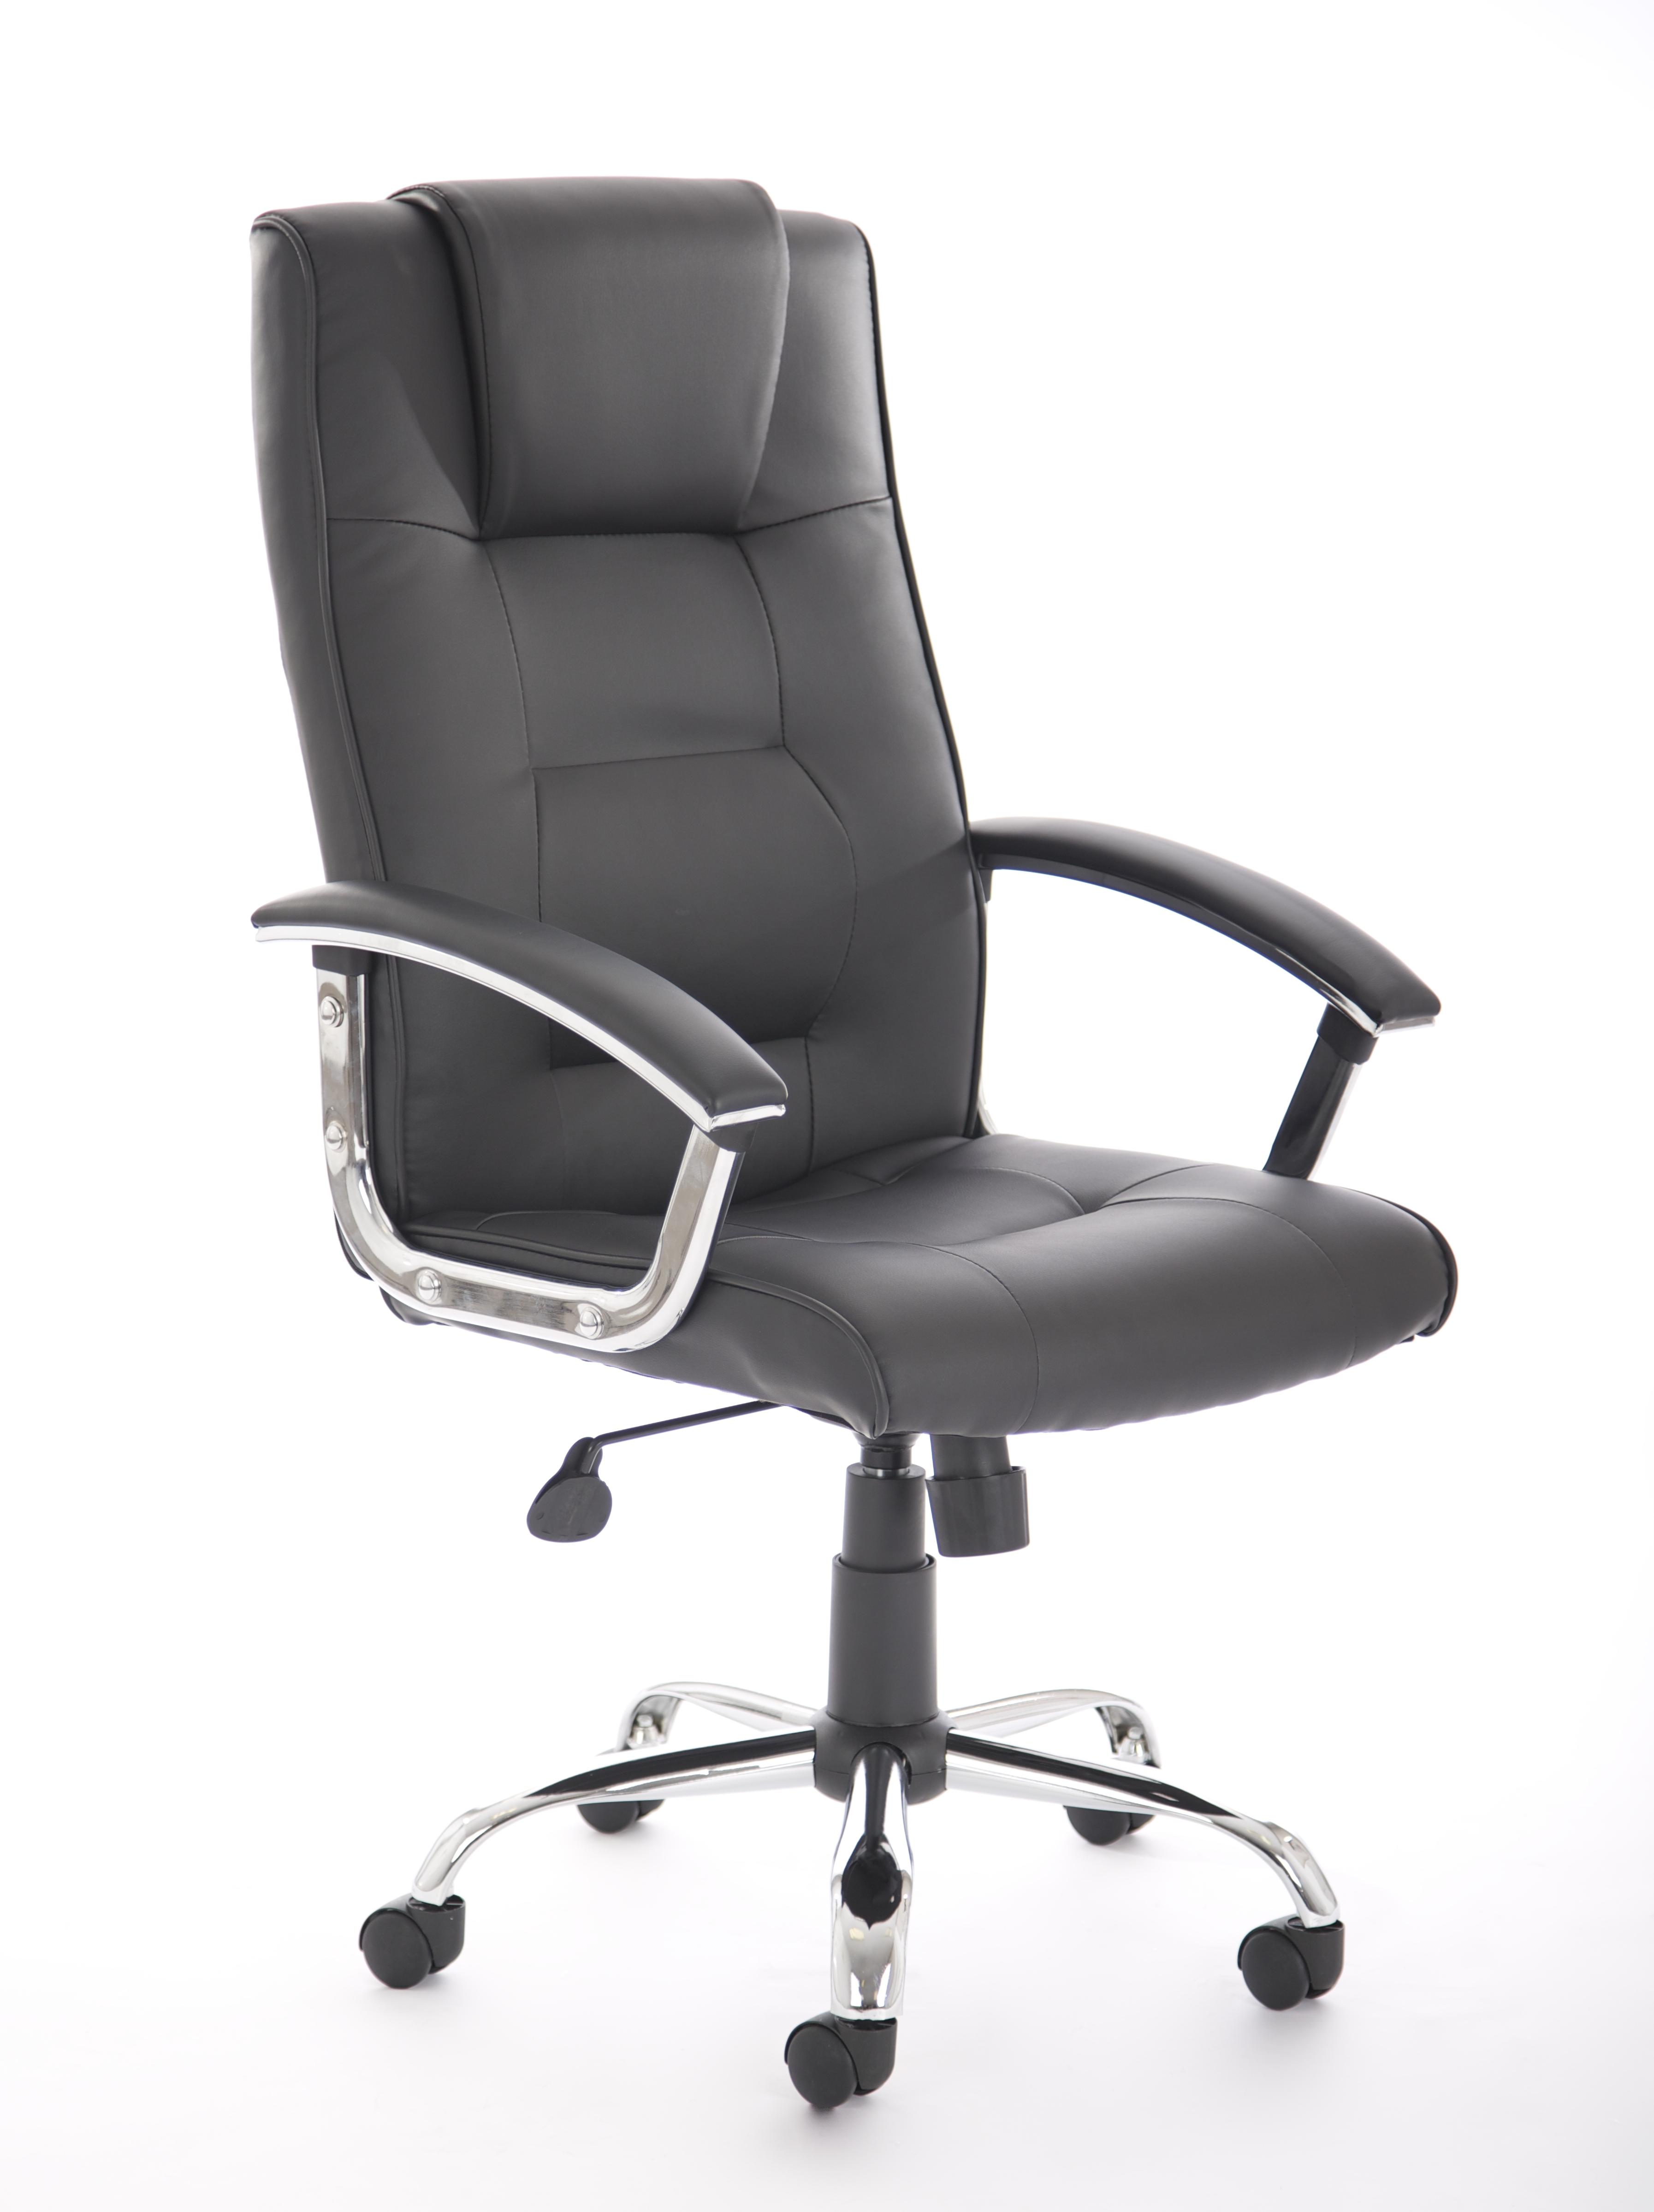 swivel office chair no arms bow ties for chairs thrift high back bonded leather executive managers